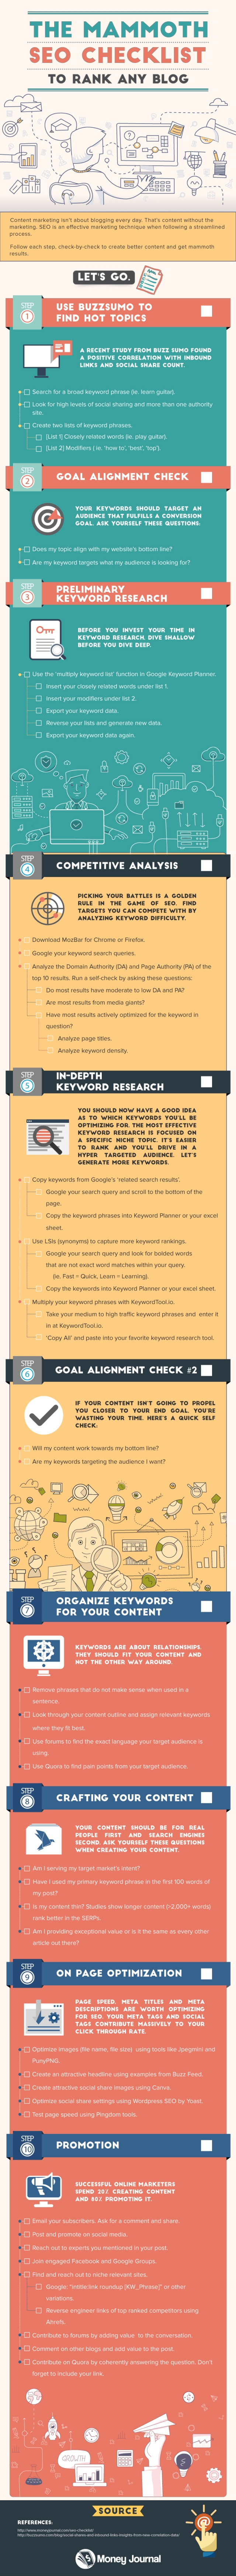 A Comprehensive 74 Step SEO Checklist for Mammoth Google Rankings